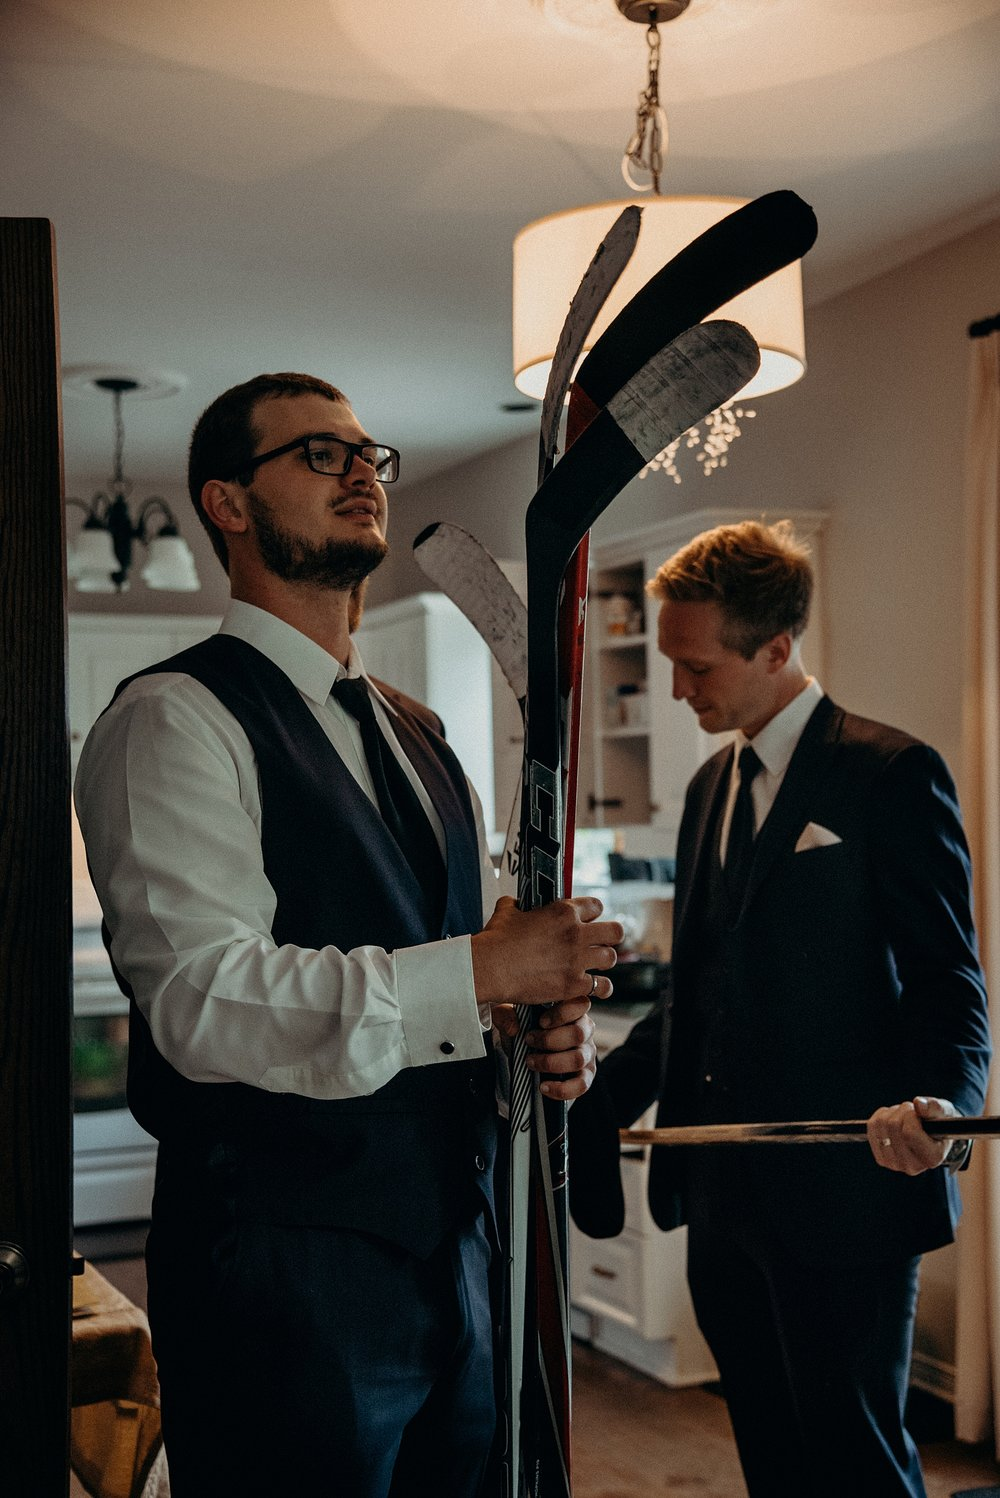 Saunders Farm Wedding Mocha Tree Studios Ottawa Toronto Montreal Wedding and Engagement Photographer and Videographer Dark Moody Intimate Authentic Modern Romantic Cinematic Best Candid Groom Getting Ready 16